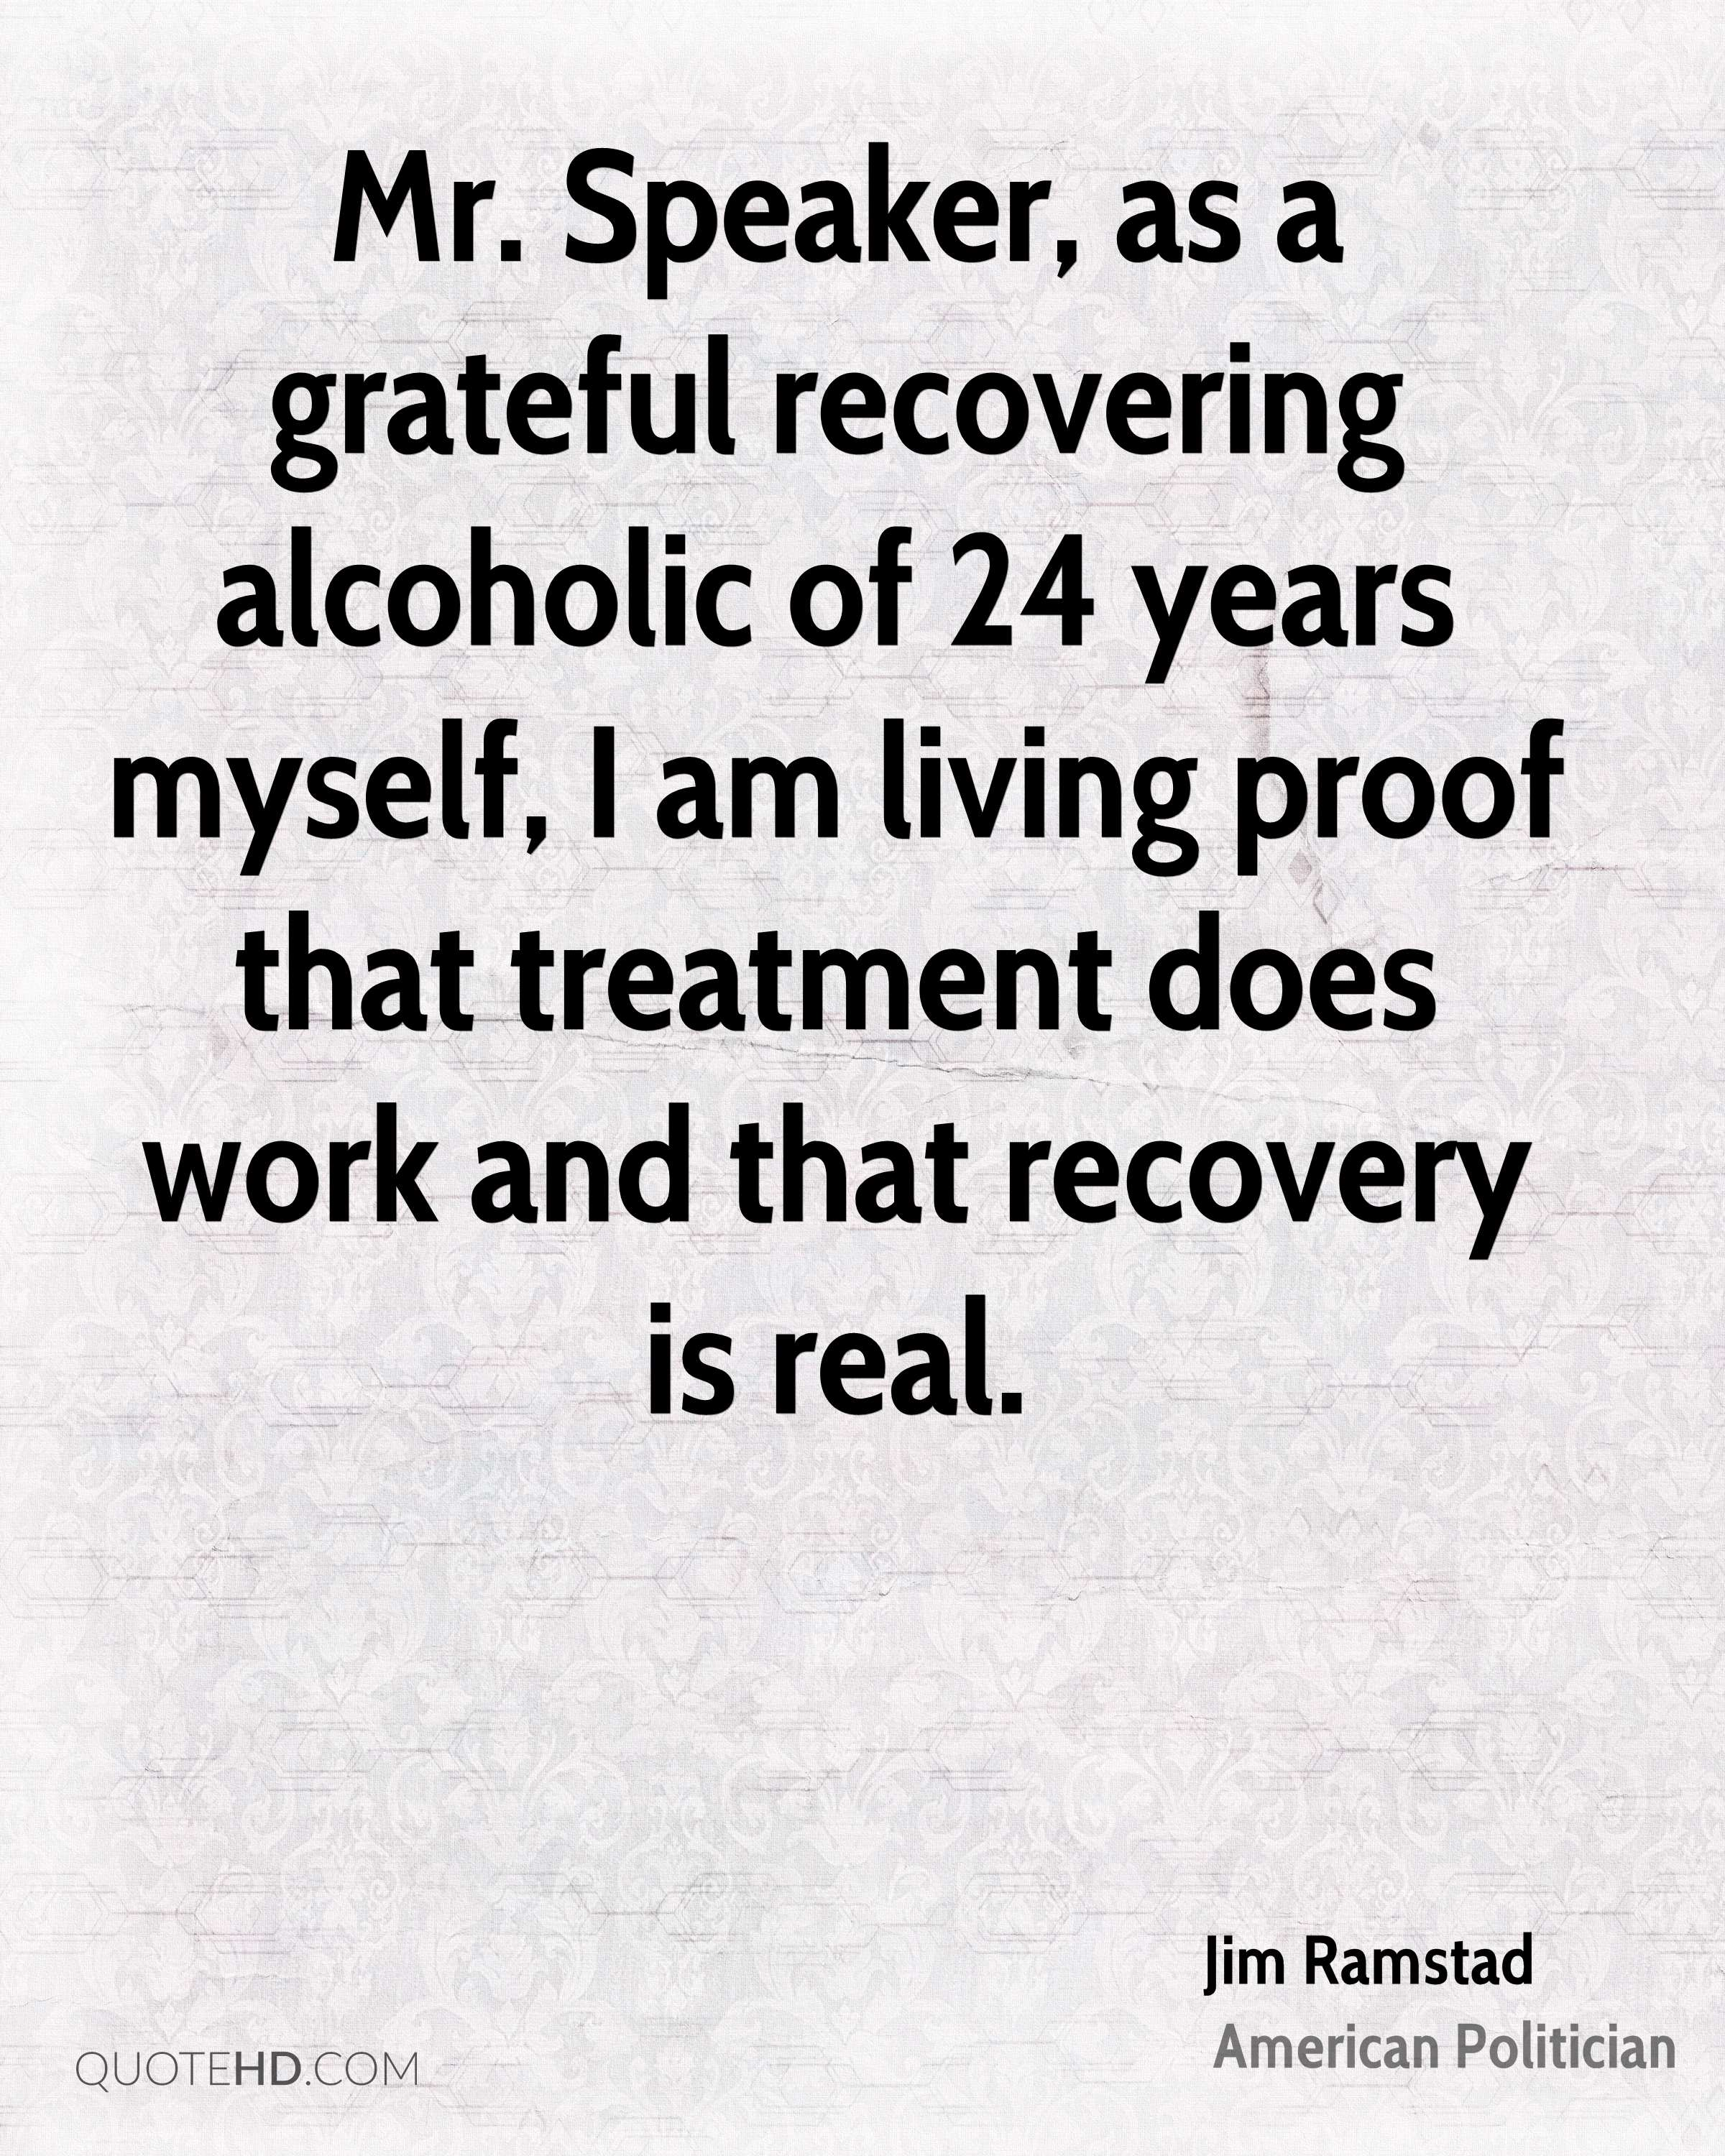 Mr. Speaker, as a grateful recovering alcoholic of 24 years myself, I am living proof that treatment does work and that recovery is real.